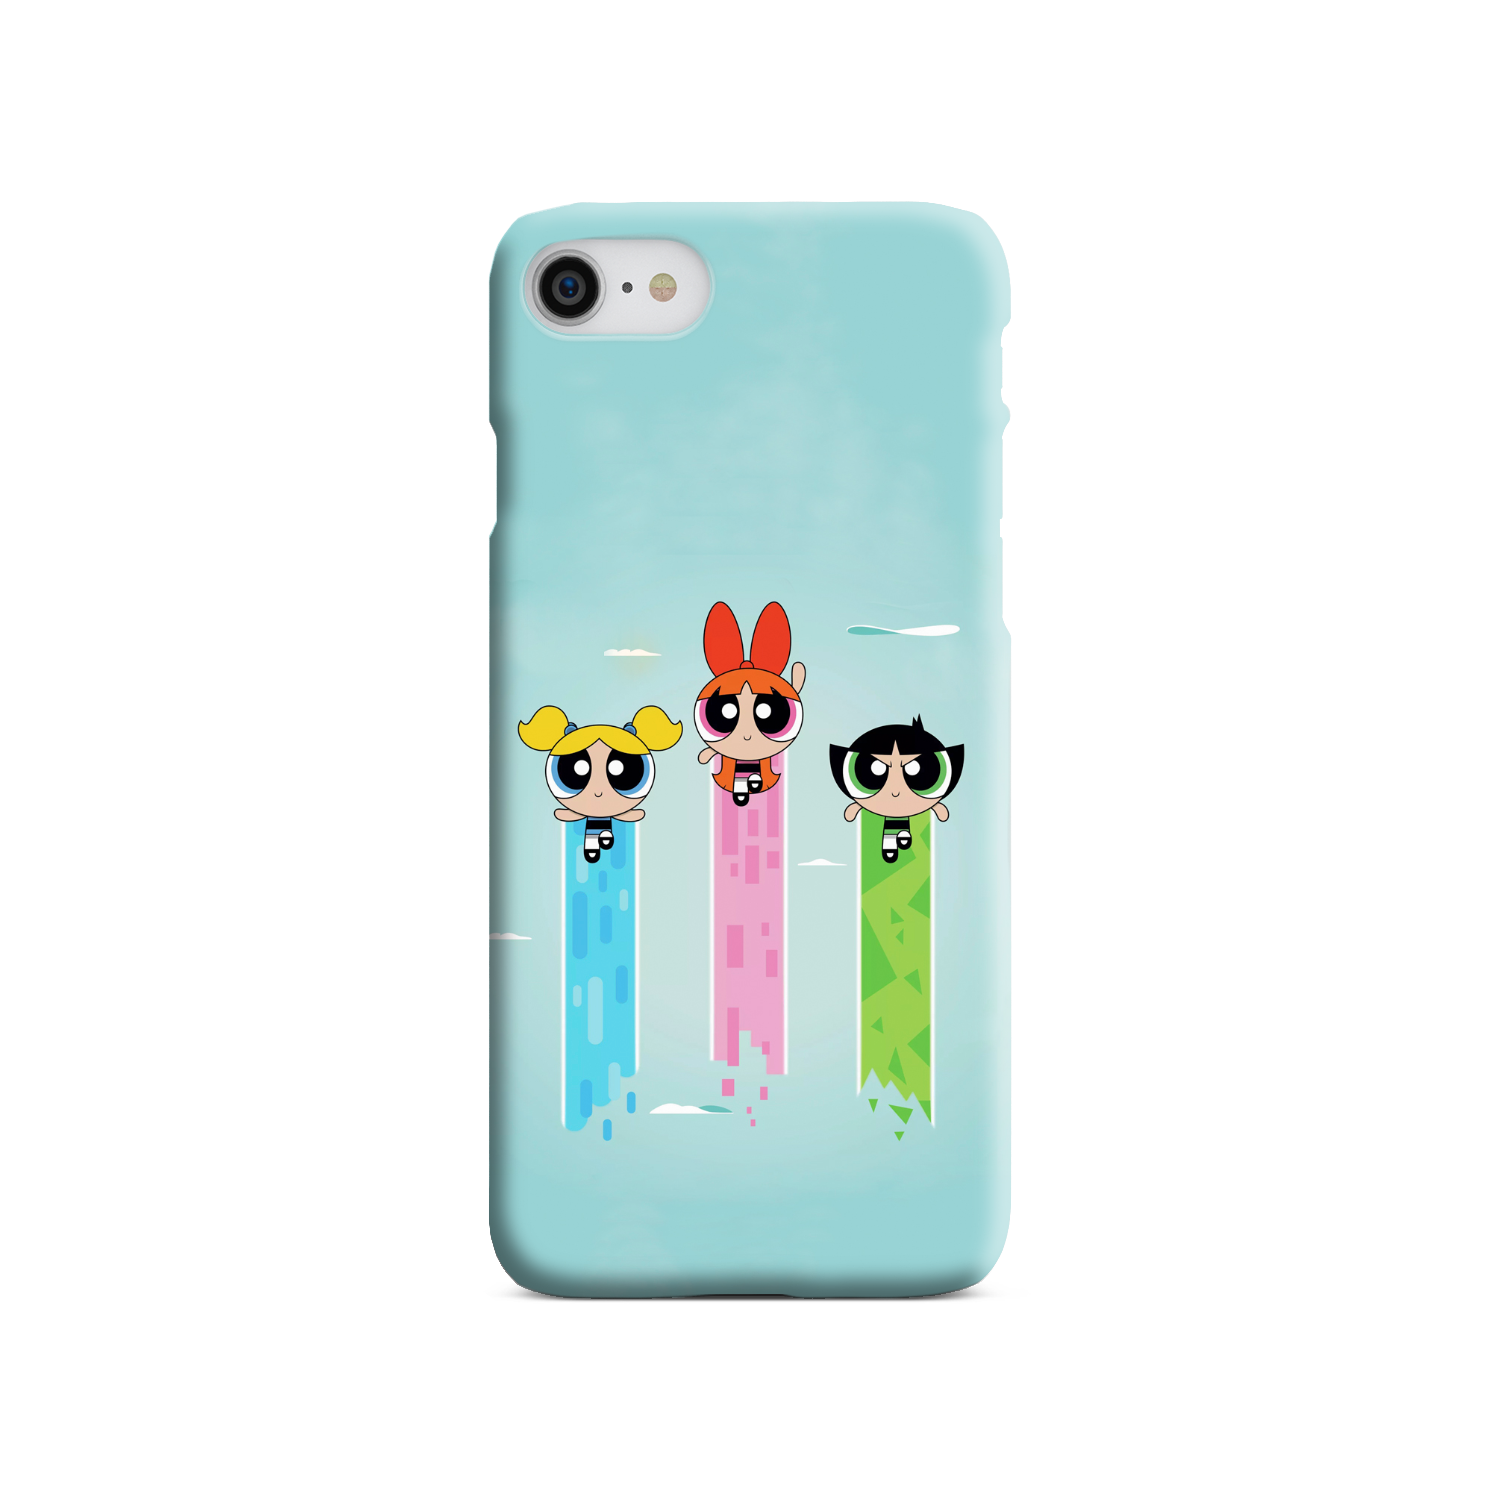 iPhone Case cover image